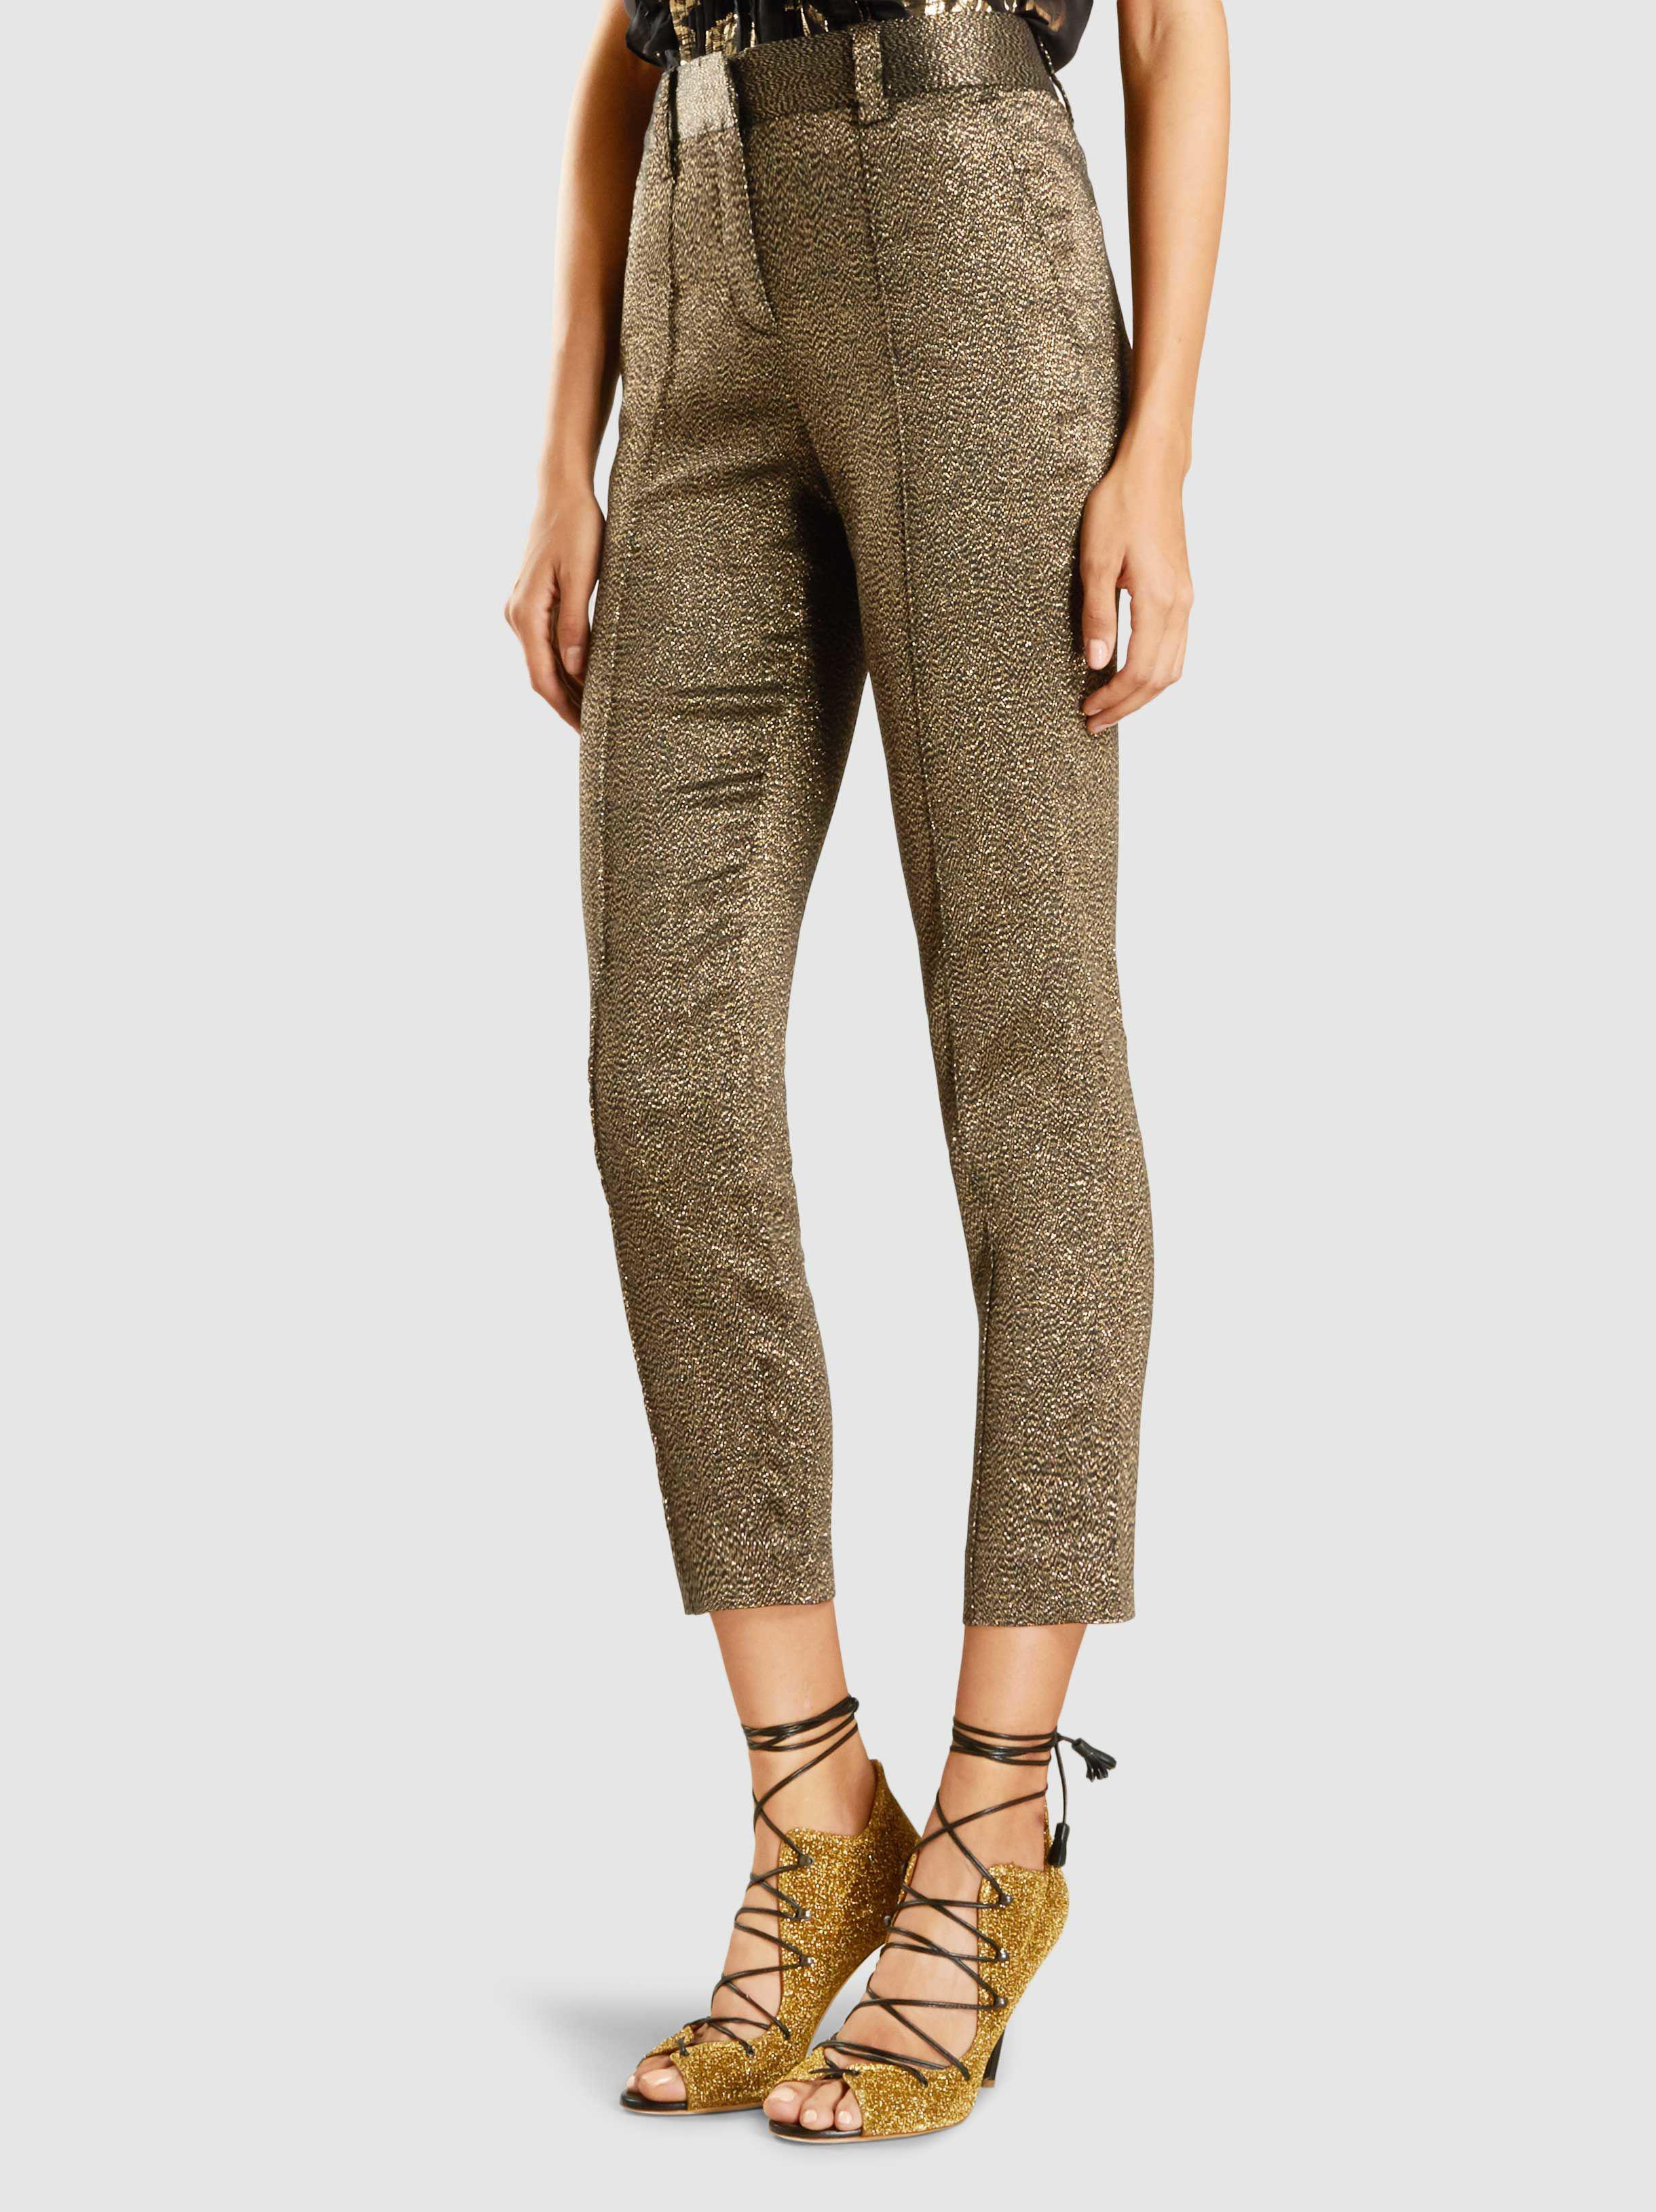 Keaton Metallic Tapered Trousers A.L.C. Xvpk0qKb